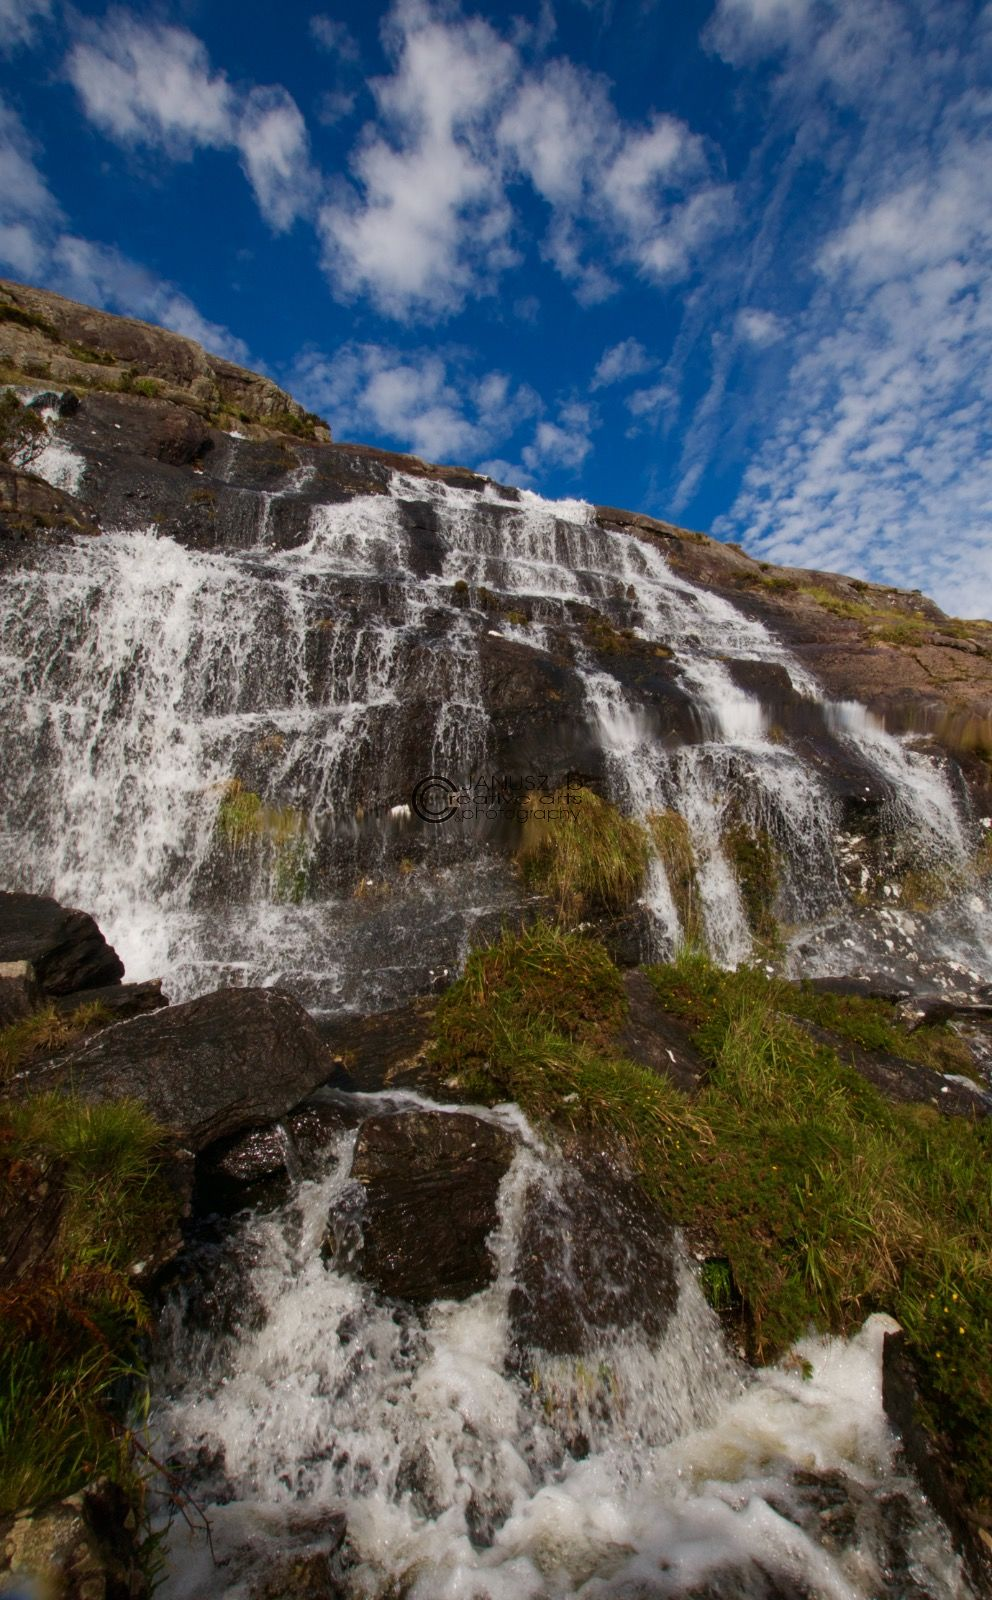 We have some great waterfalls including the longest in Ireland